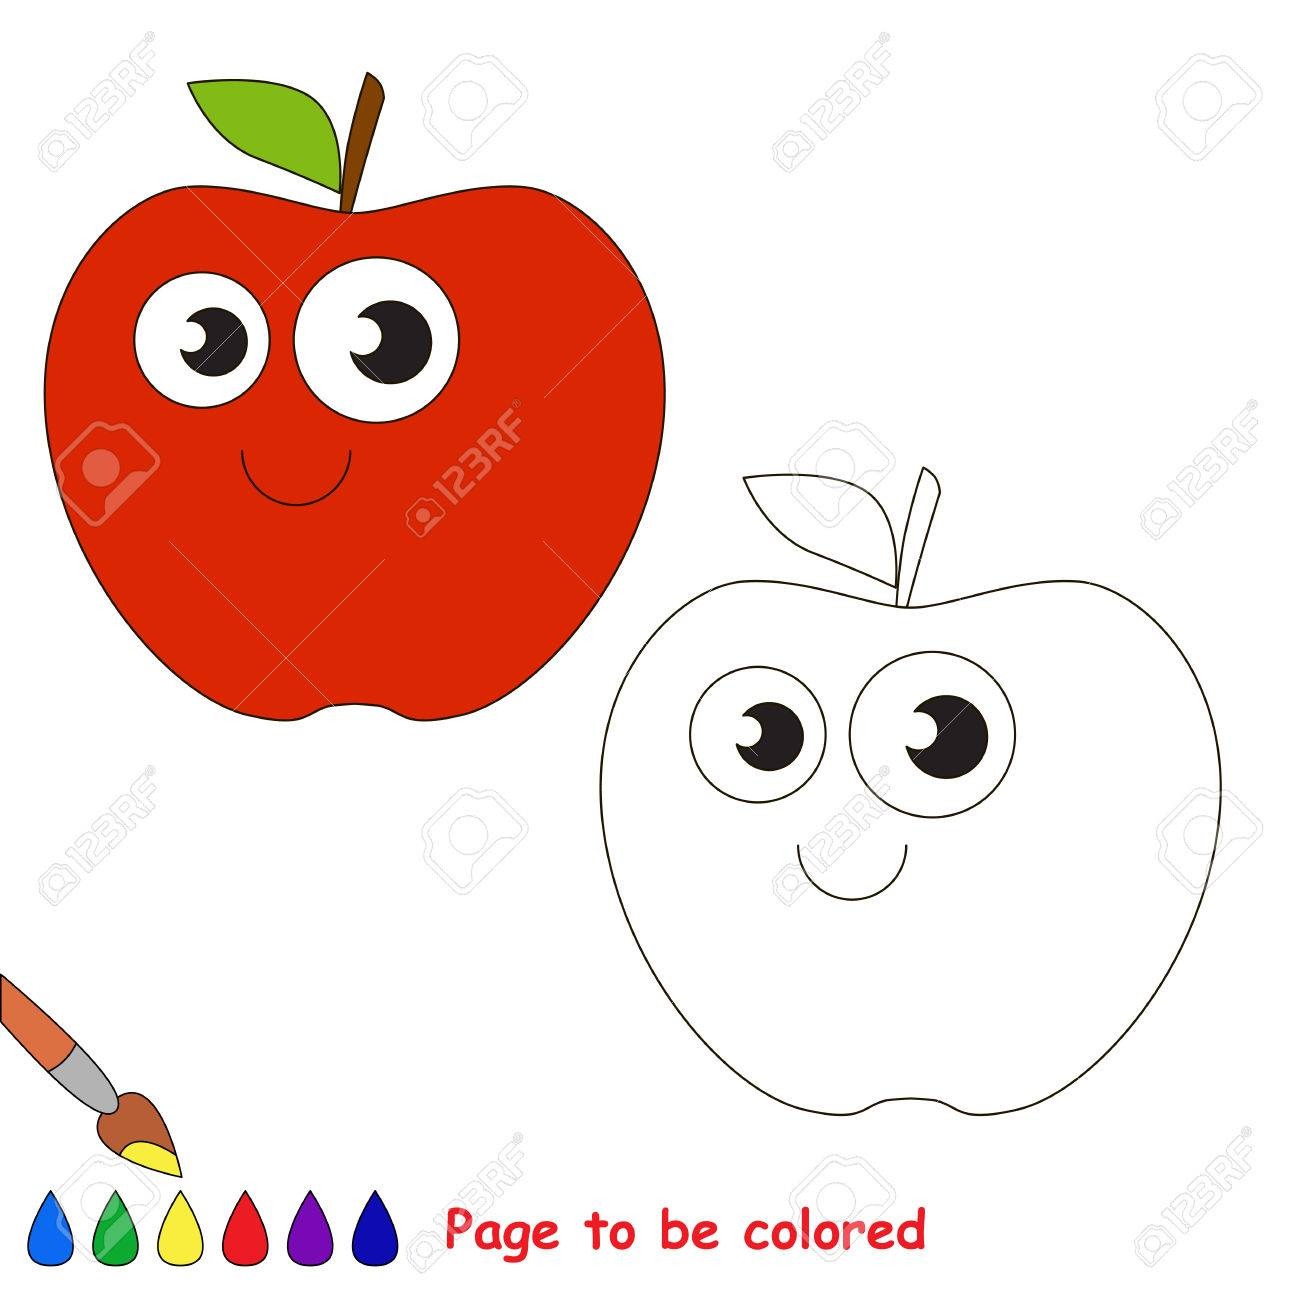 apple to be colored coloring book to educate kids learn colors